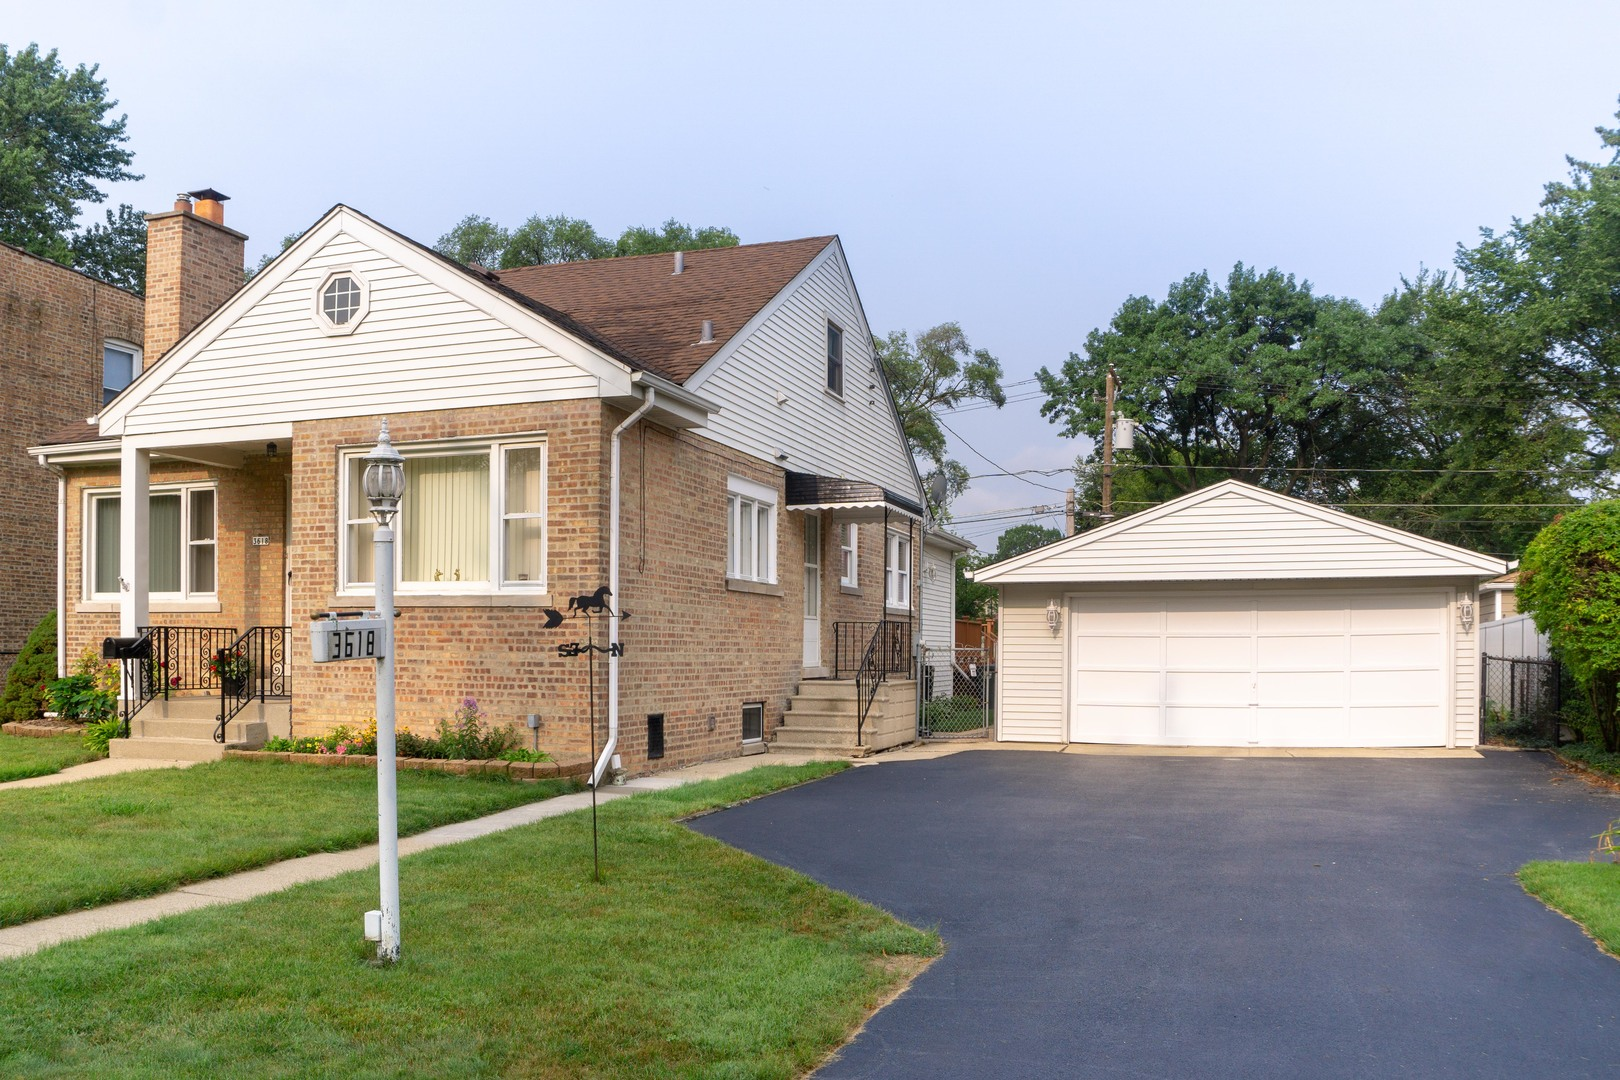 Property for sale at 3618 Rosemear Avenue, Brookfield,  Il 60513